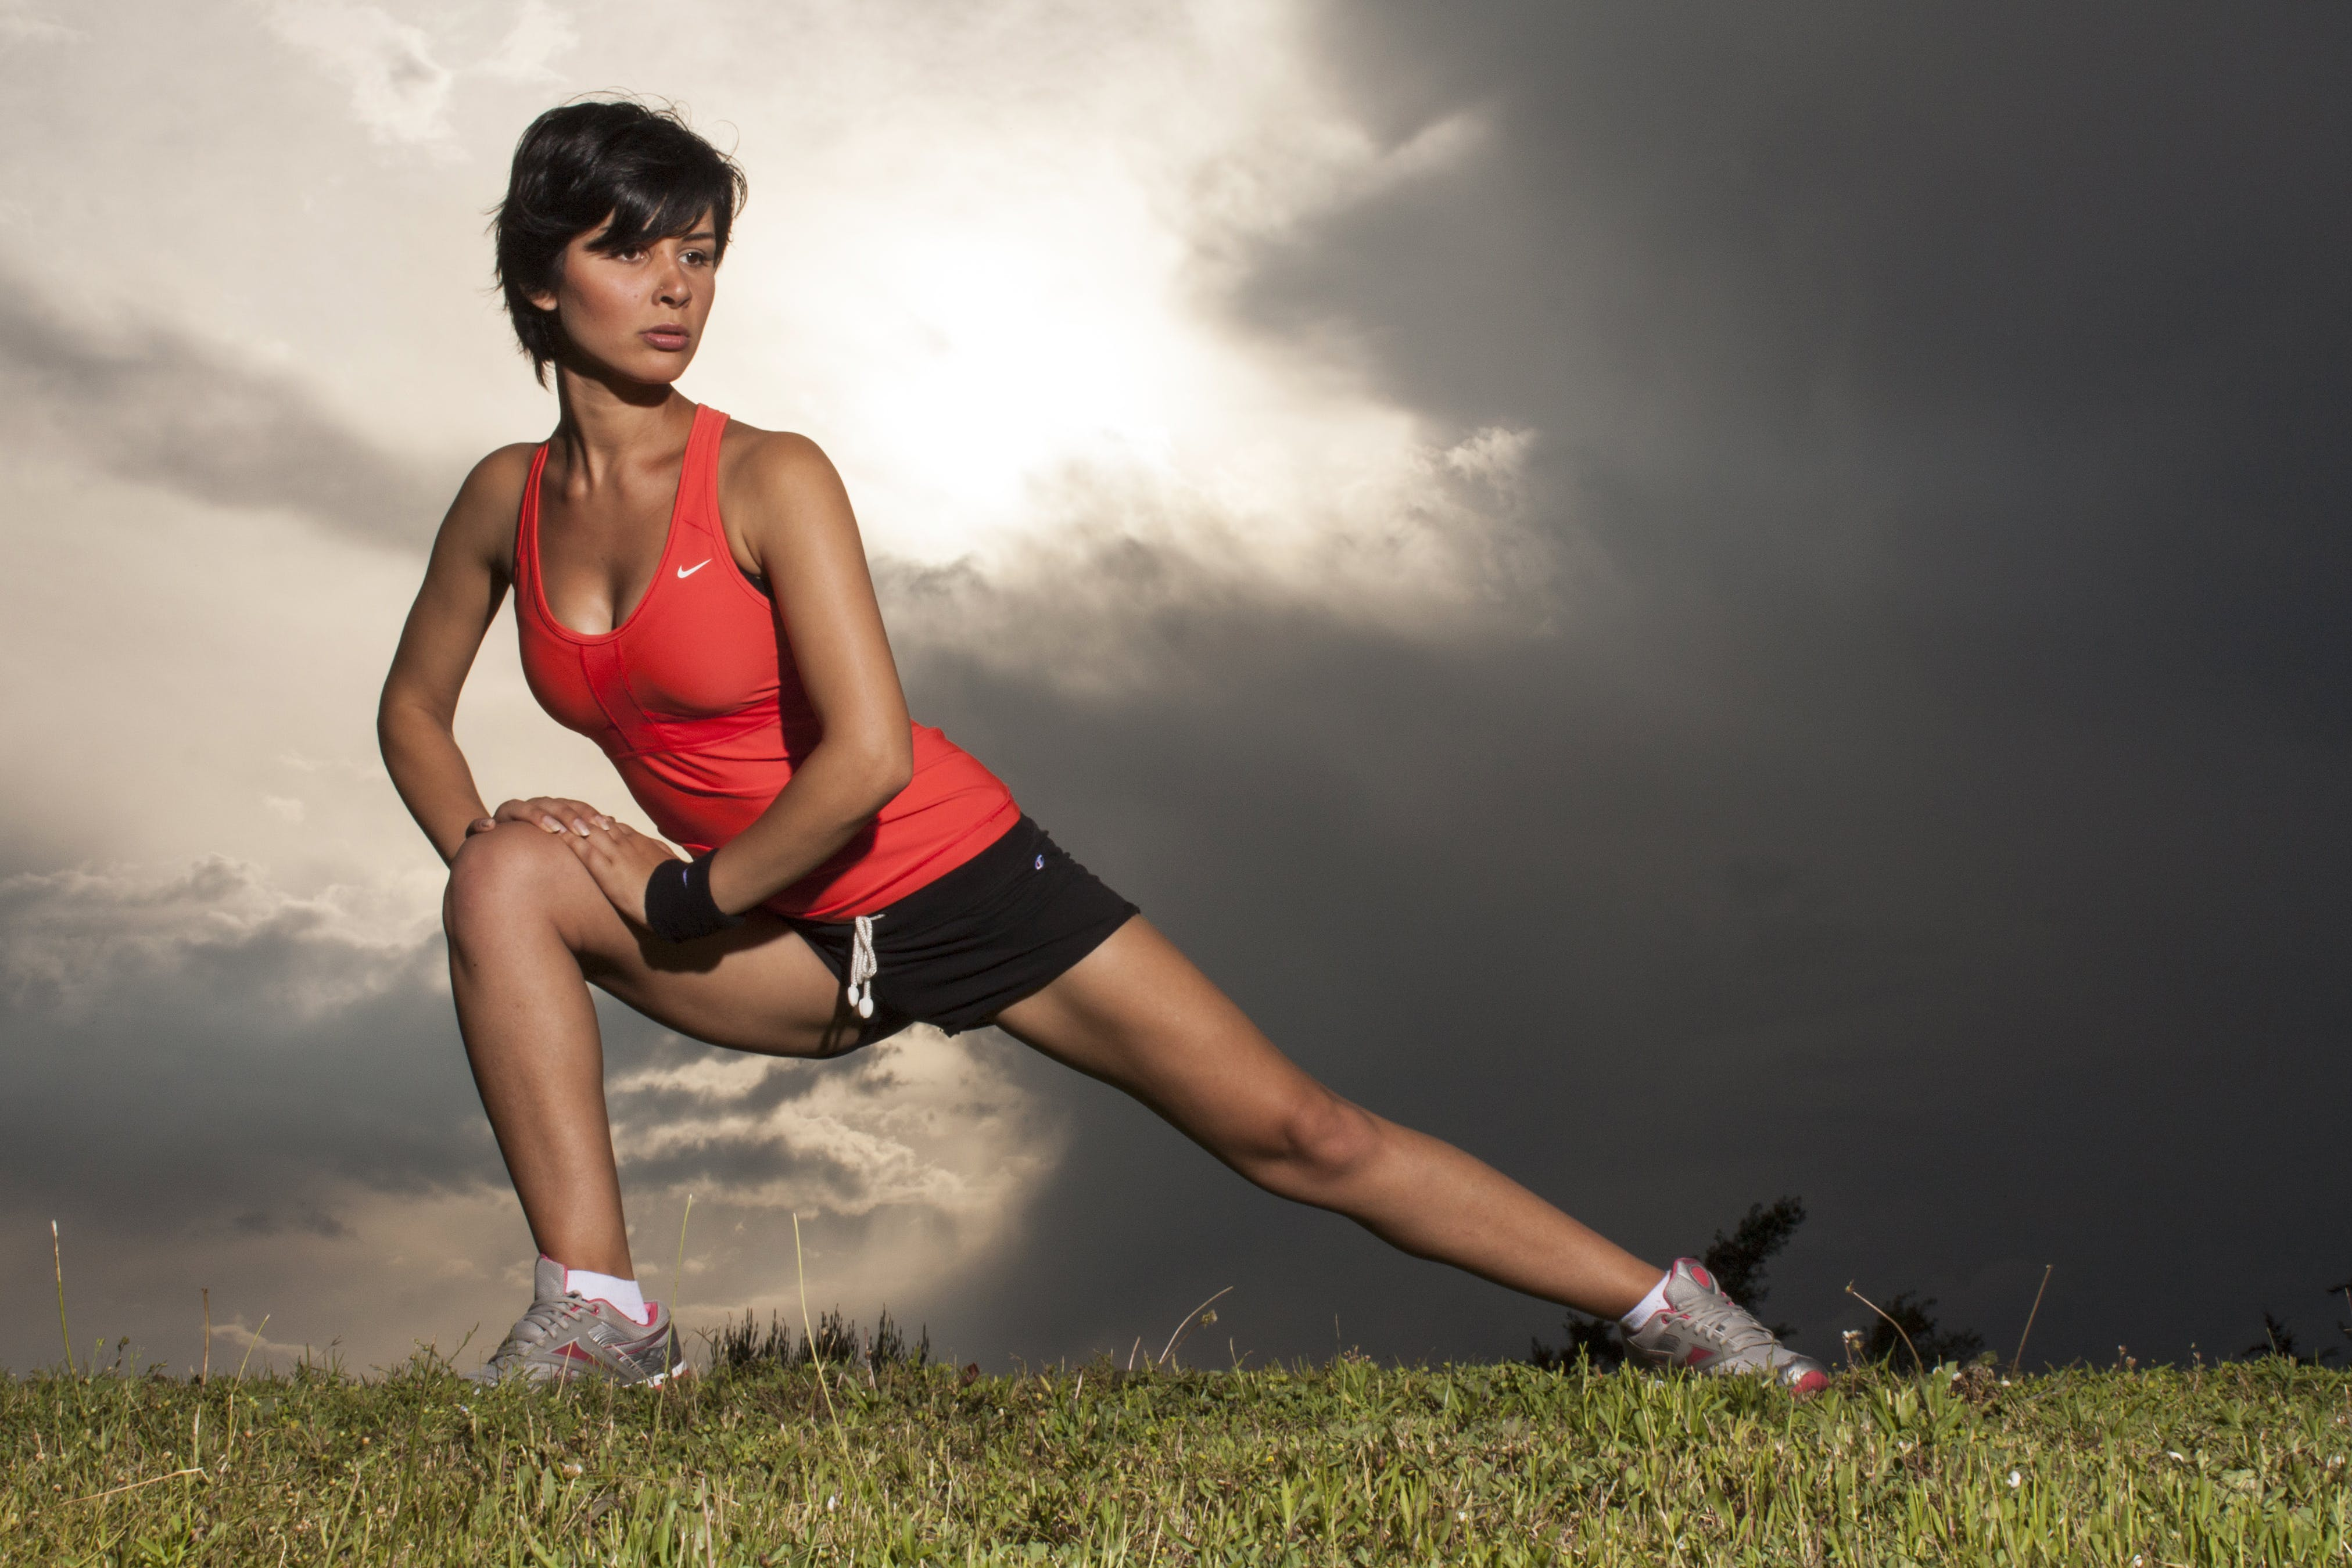 Healthy lifestyle Stock Photos Images Pictures HD 4048x2699